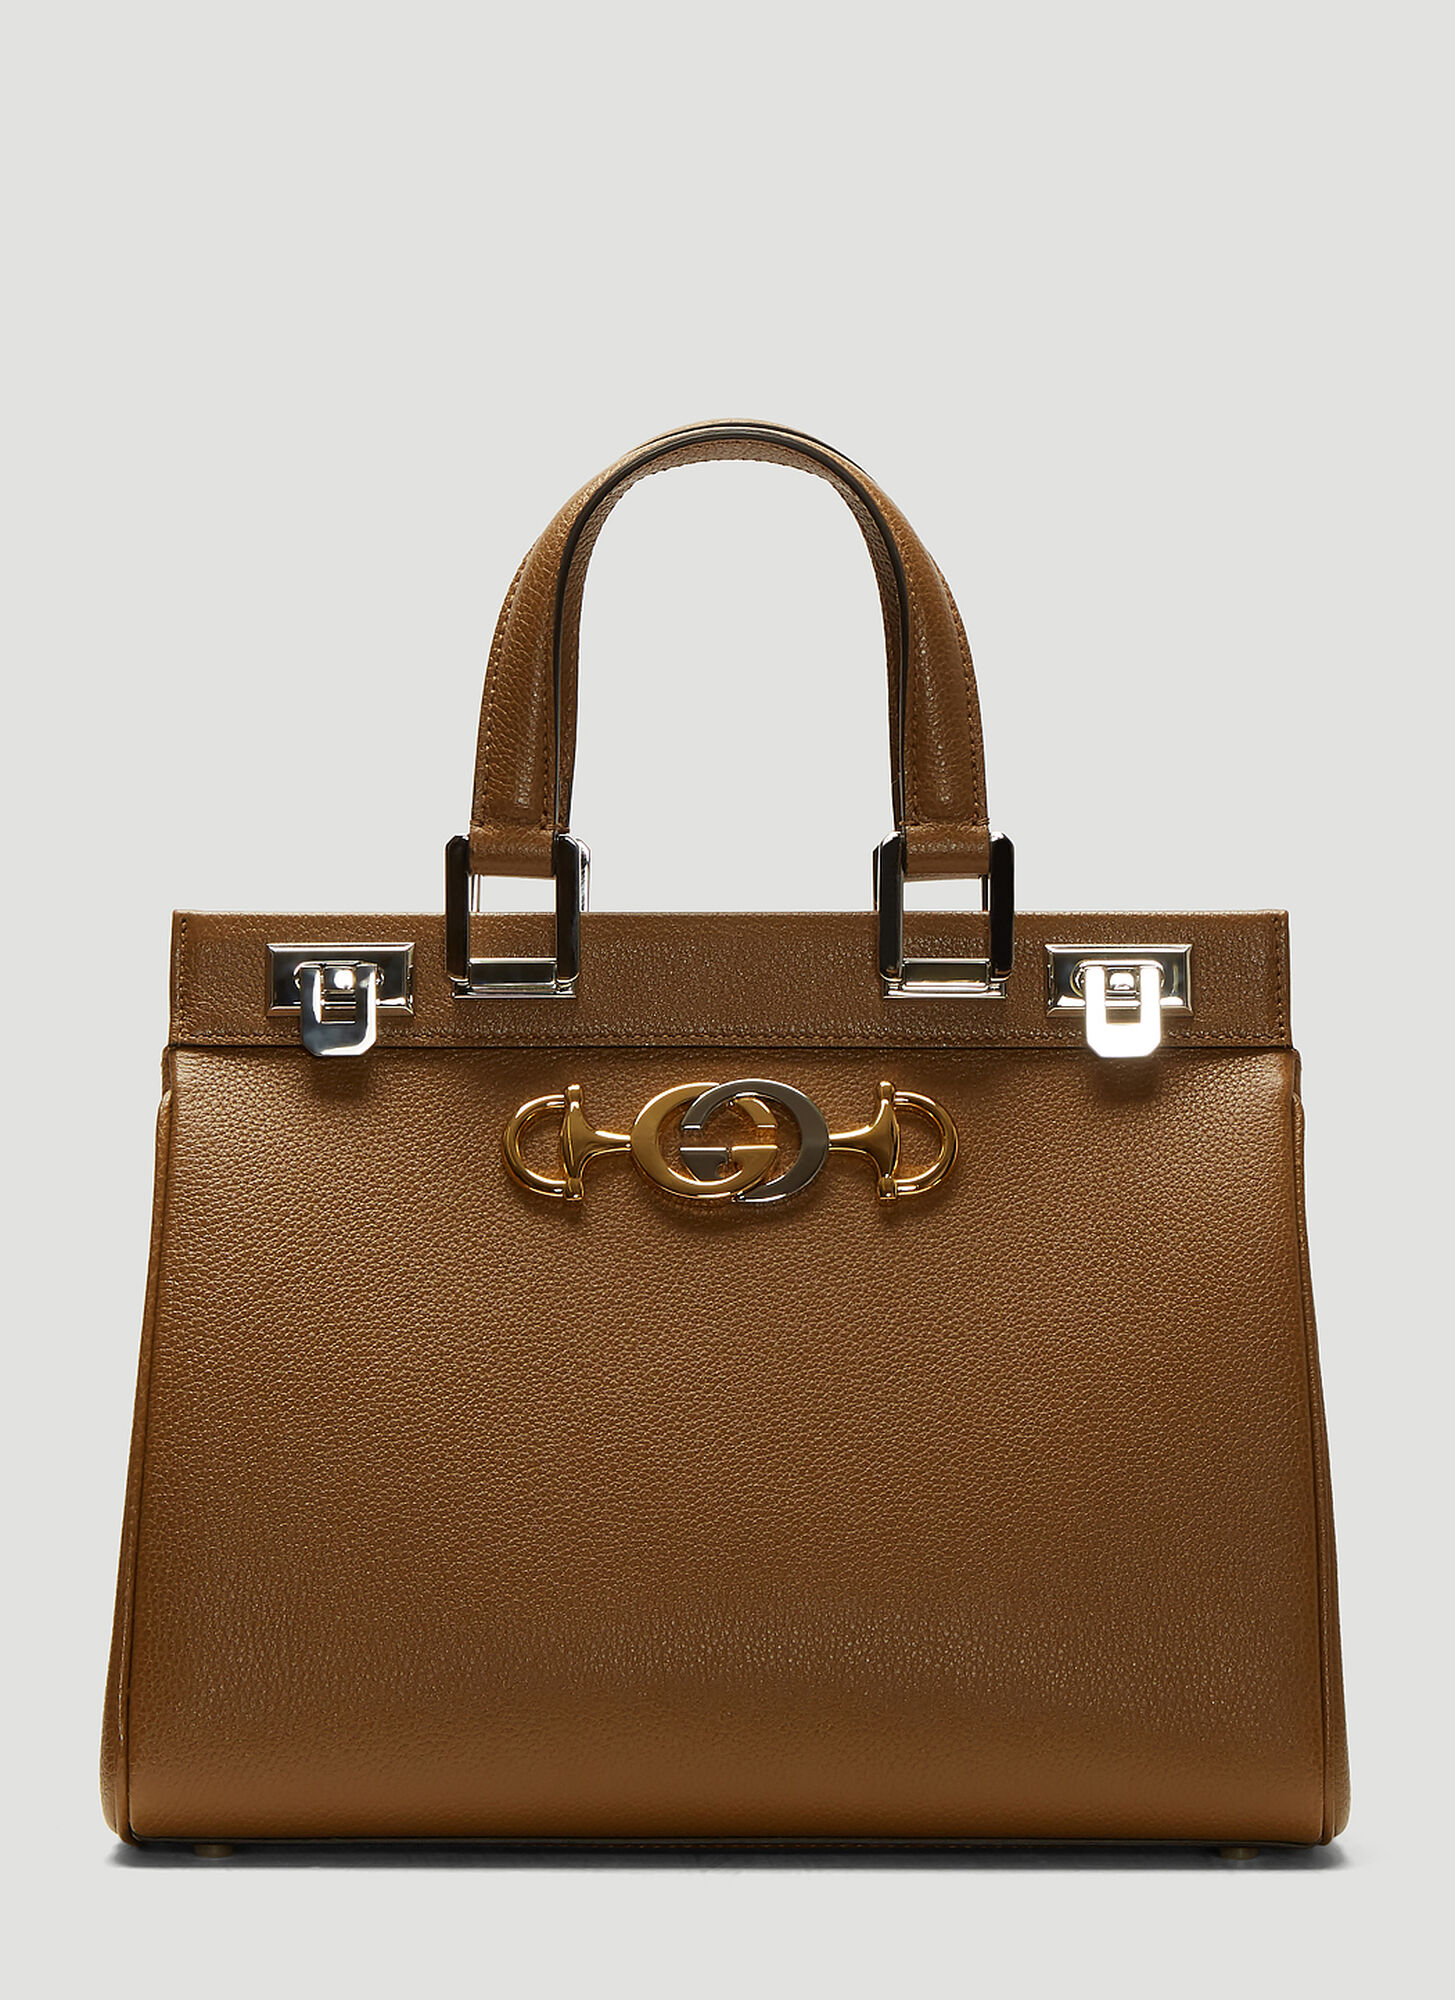 Gucci Zumi Top Handle Leather Bag in Brown